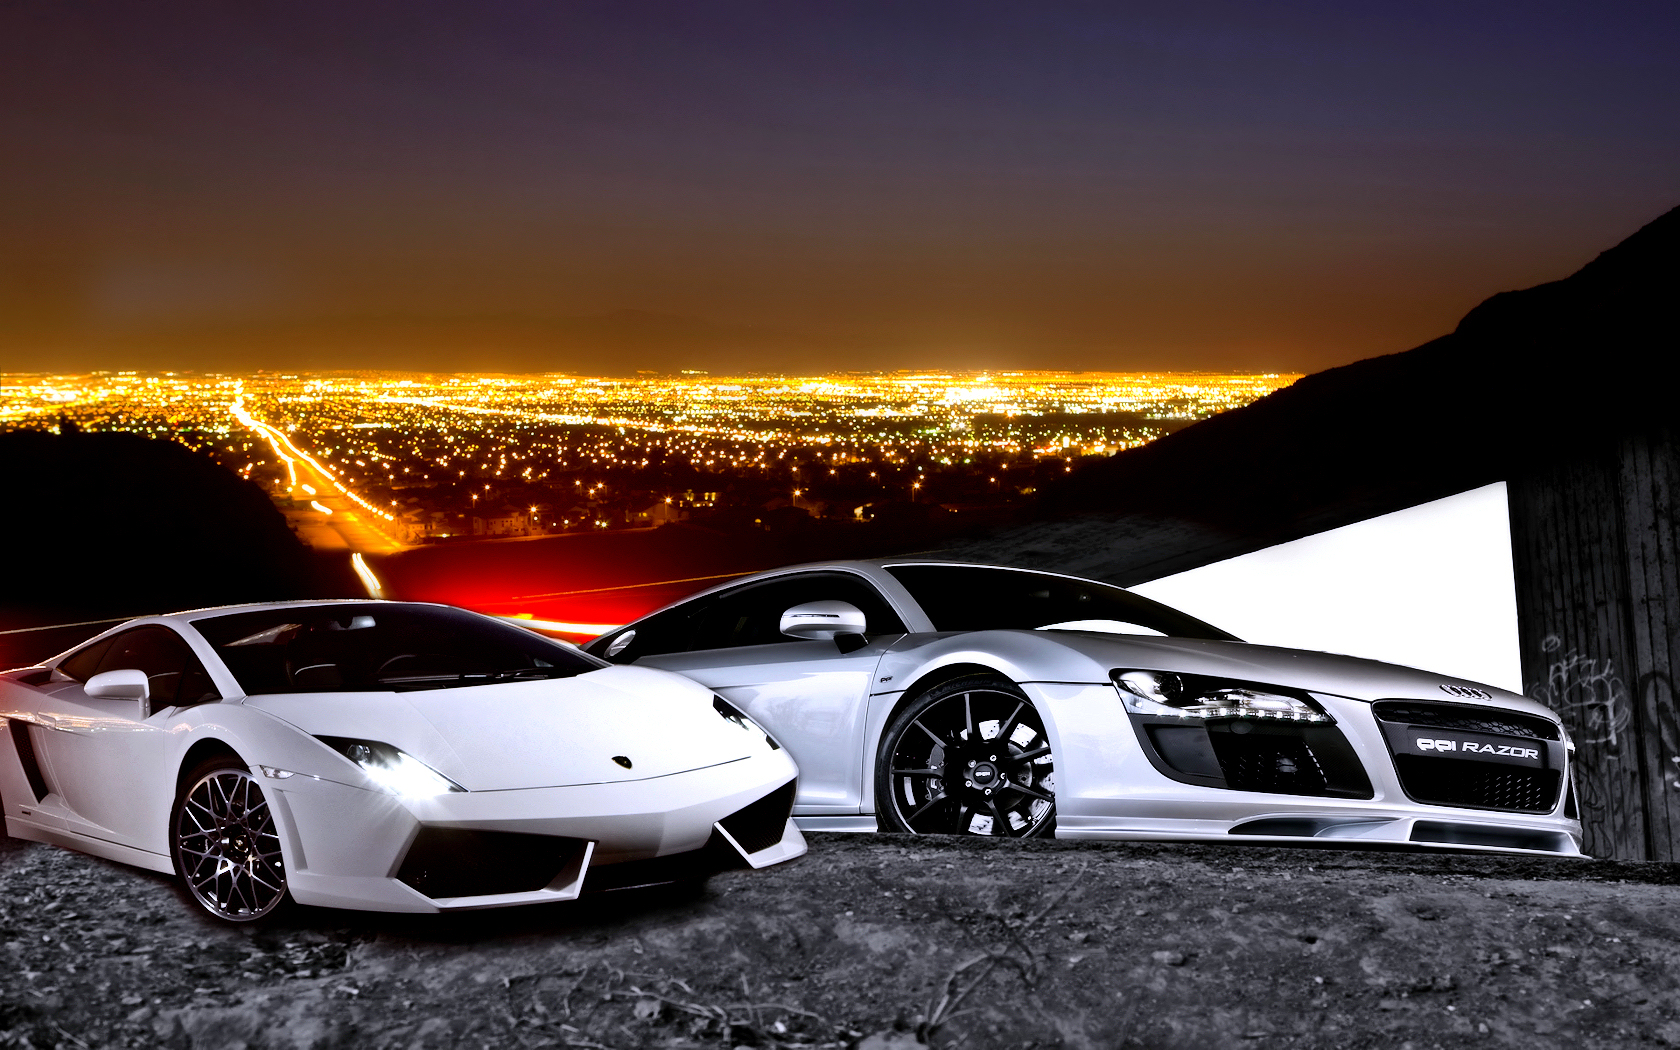 Audi And Lamborghini By Allenandtady On Deviantart